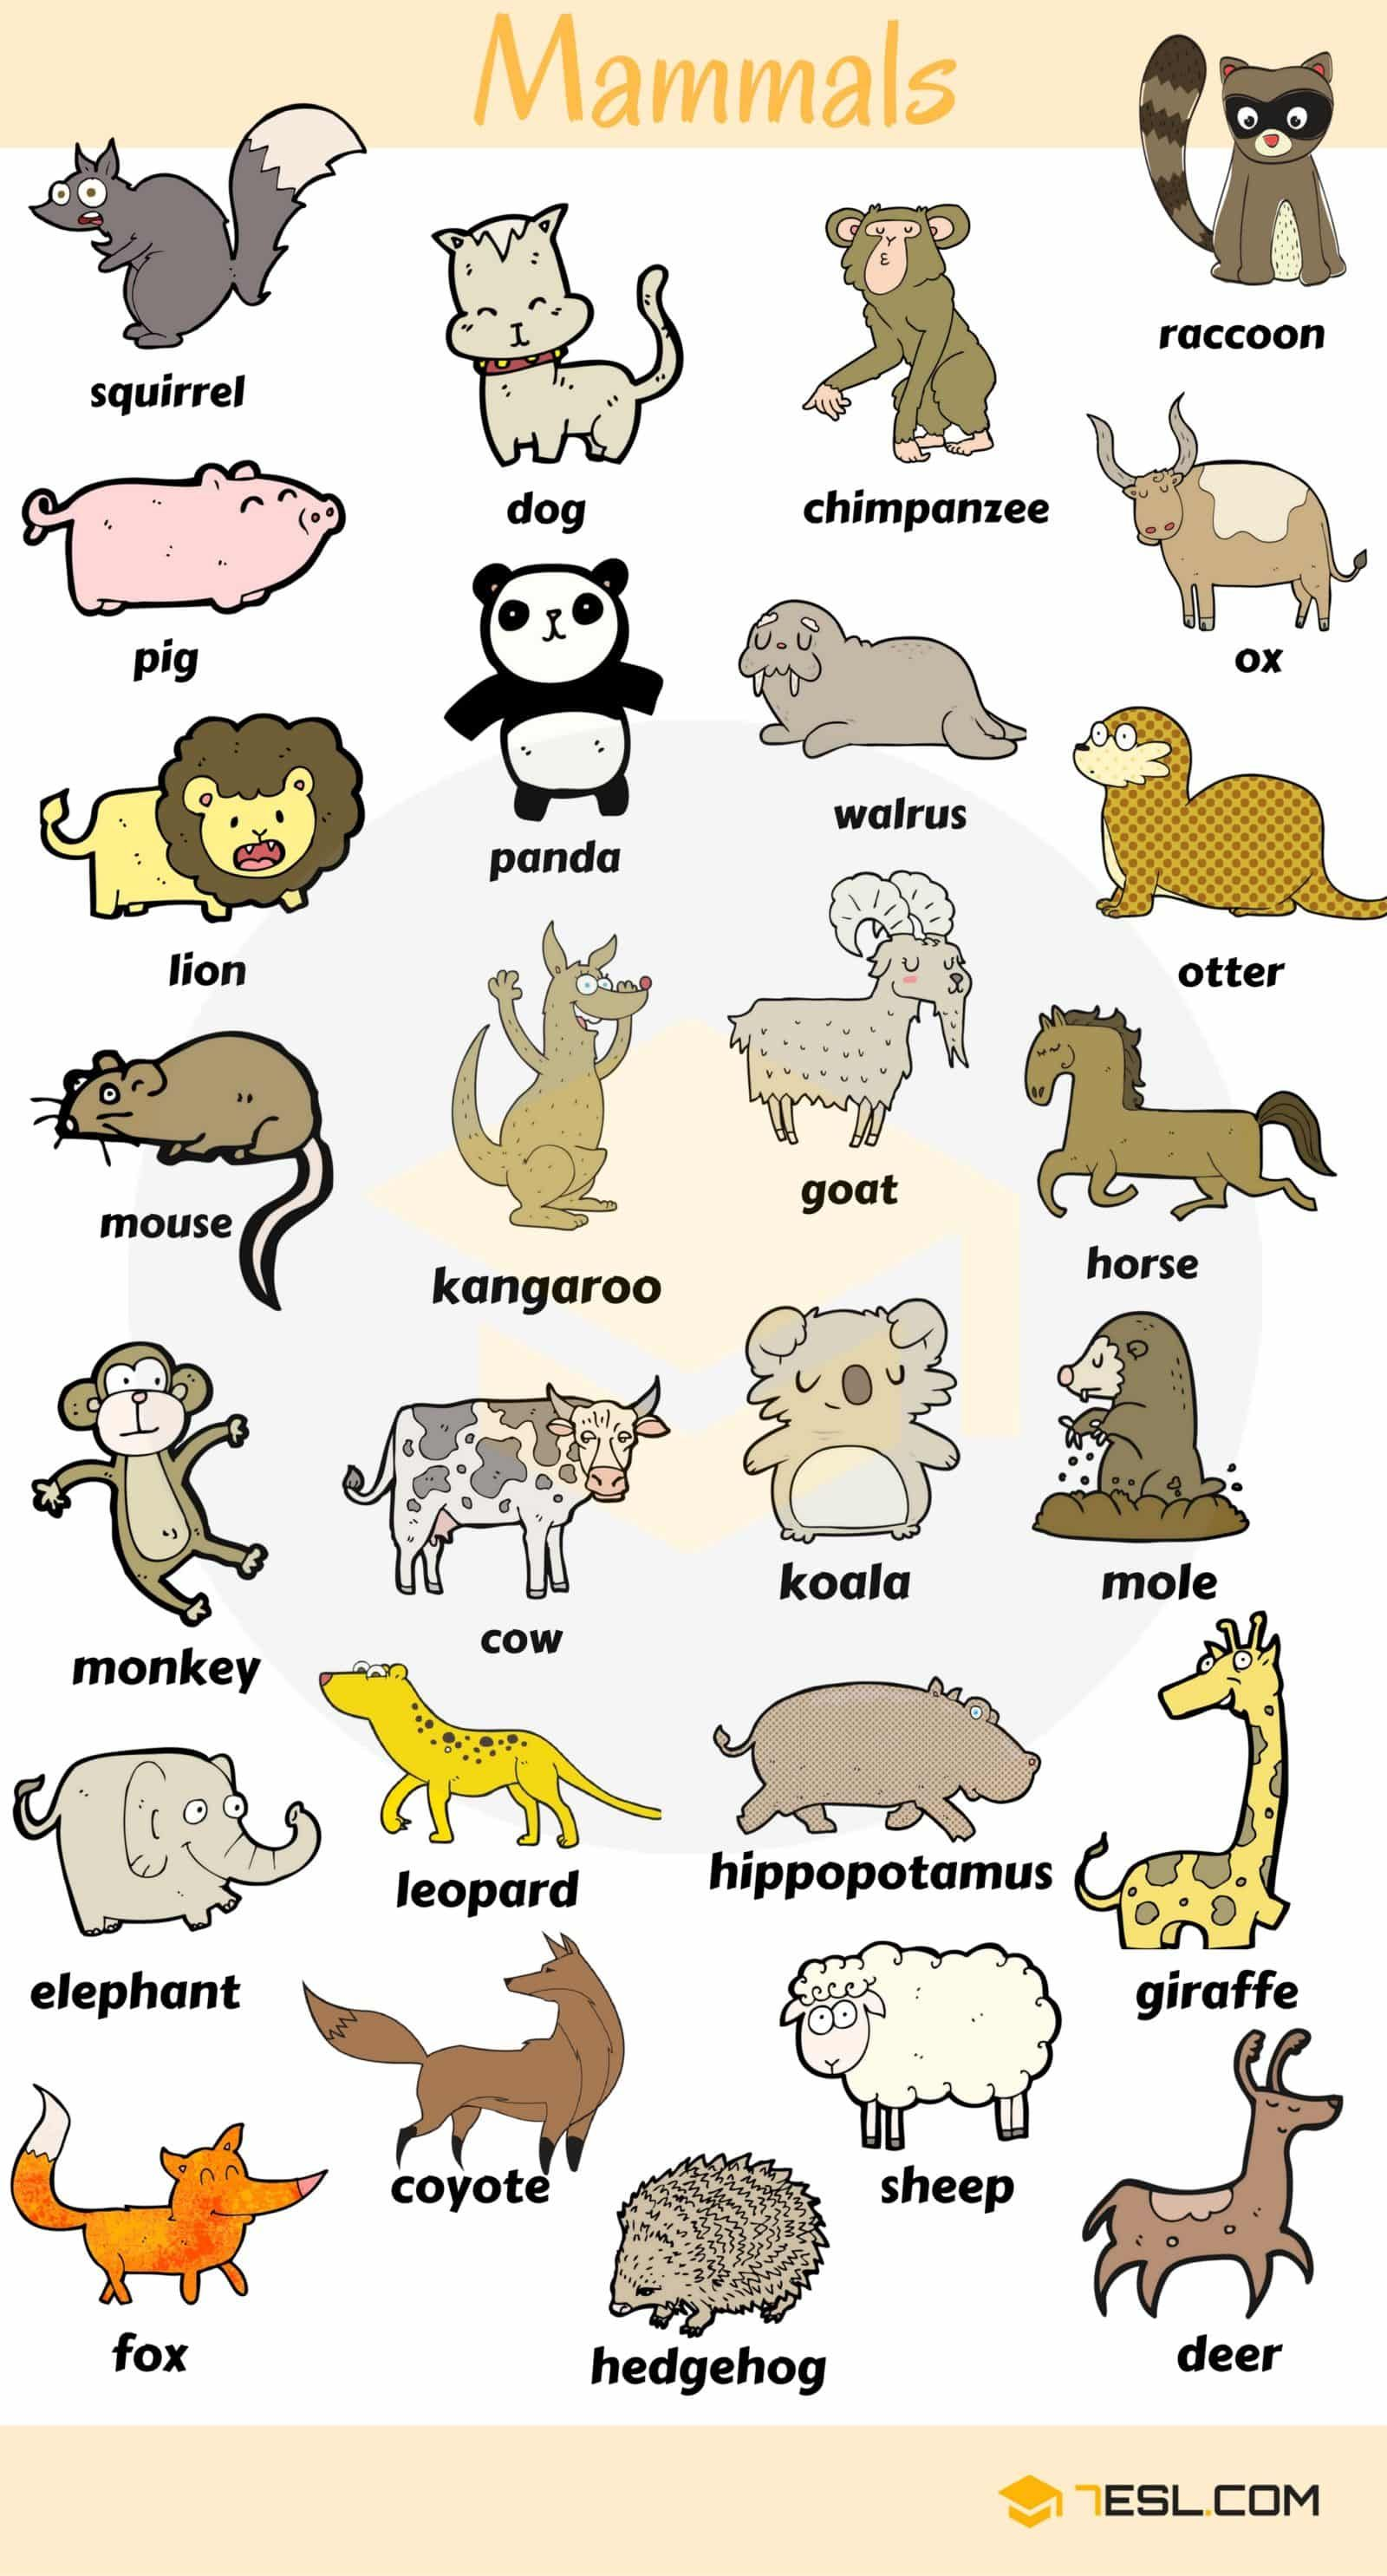 Learn Mammals Vocabulary In English Through Pictures Eslbuzz Learning English Animals Name In English English Vocabulary Learn English